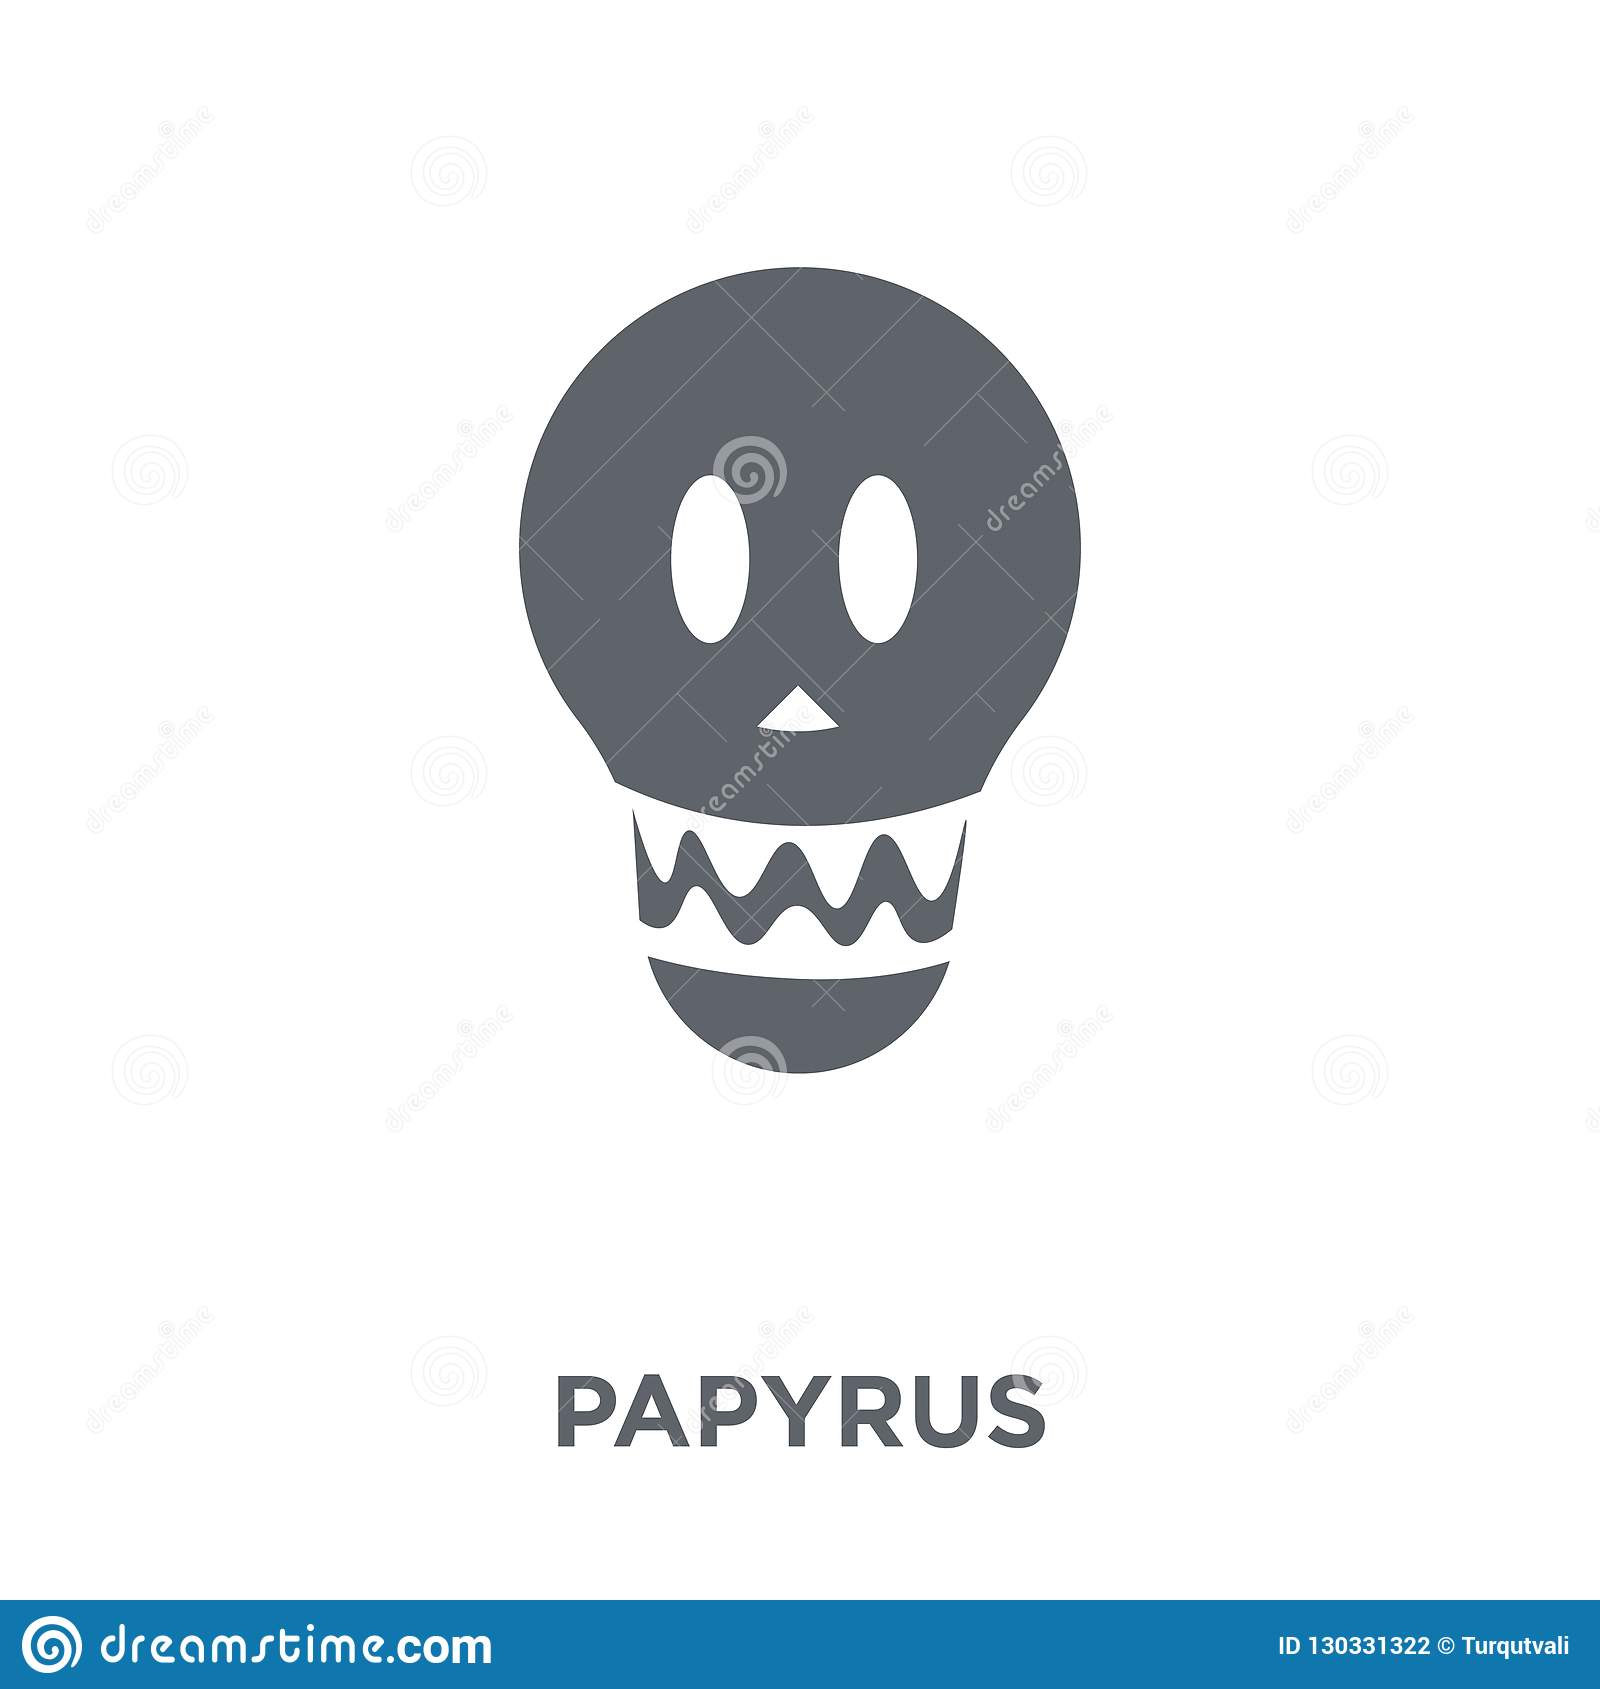 Papyrus icon from collection.